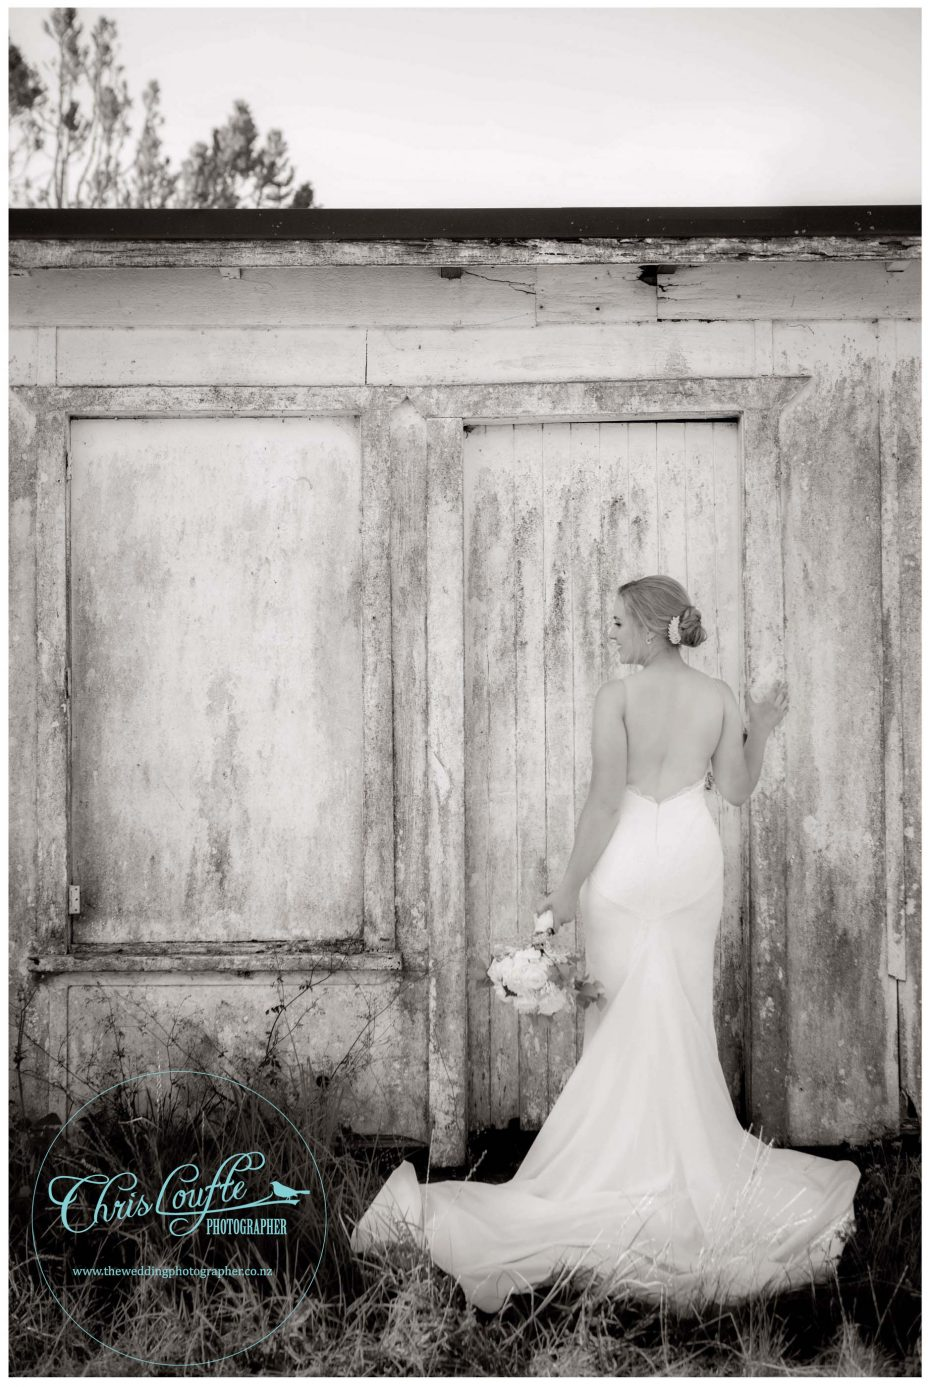 Bride in White backless weddding dress poses against rustic orchard outbuilding in Kumeu orchard, black and white photo